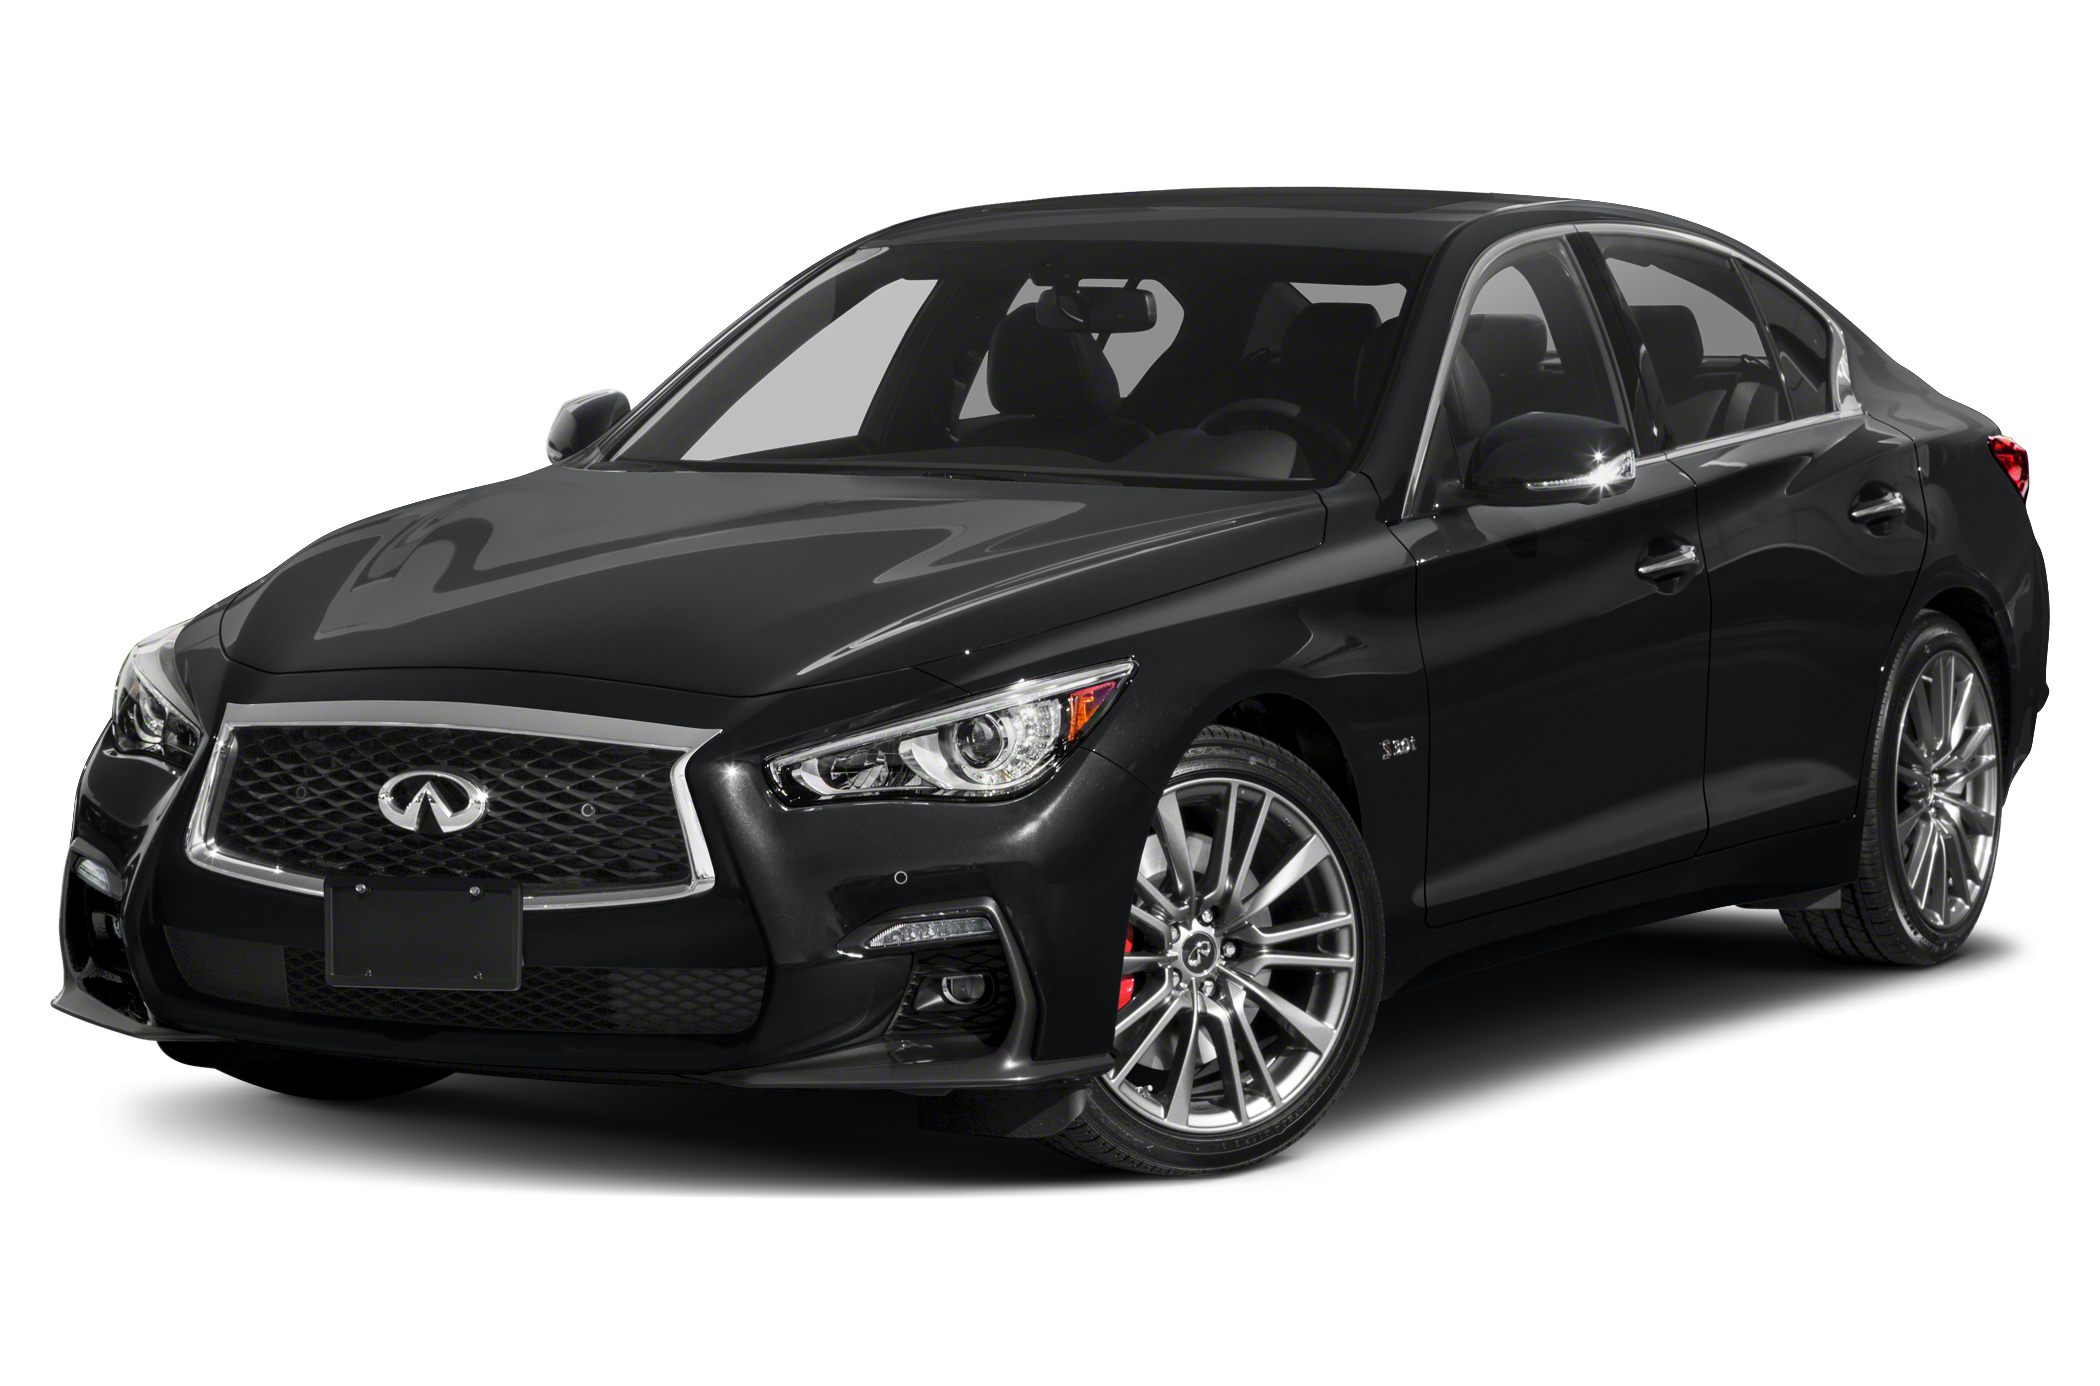 2020 Infiniti Q50 Edition 30 4dr Rear Wheel Drive Sedan Pictures